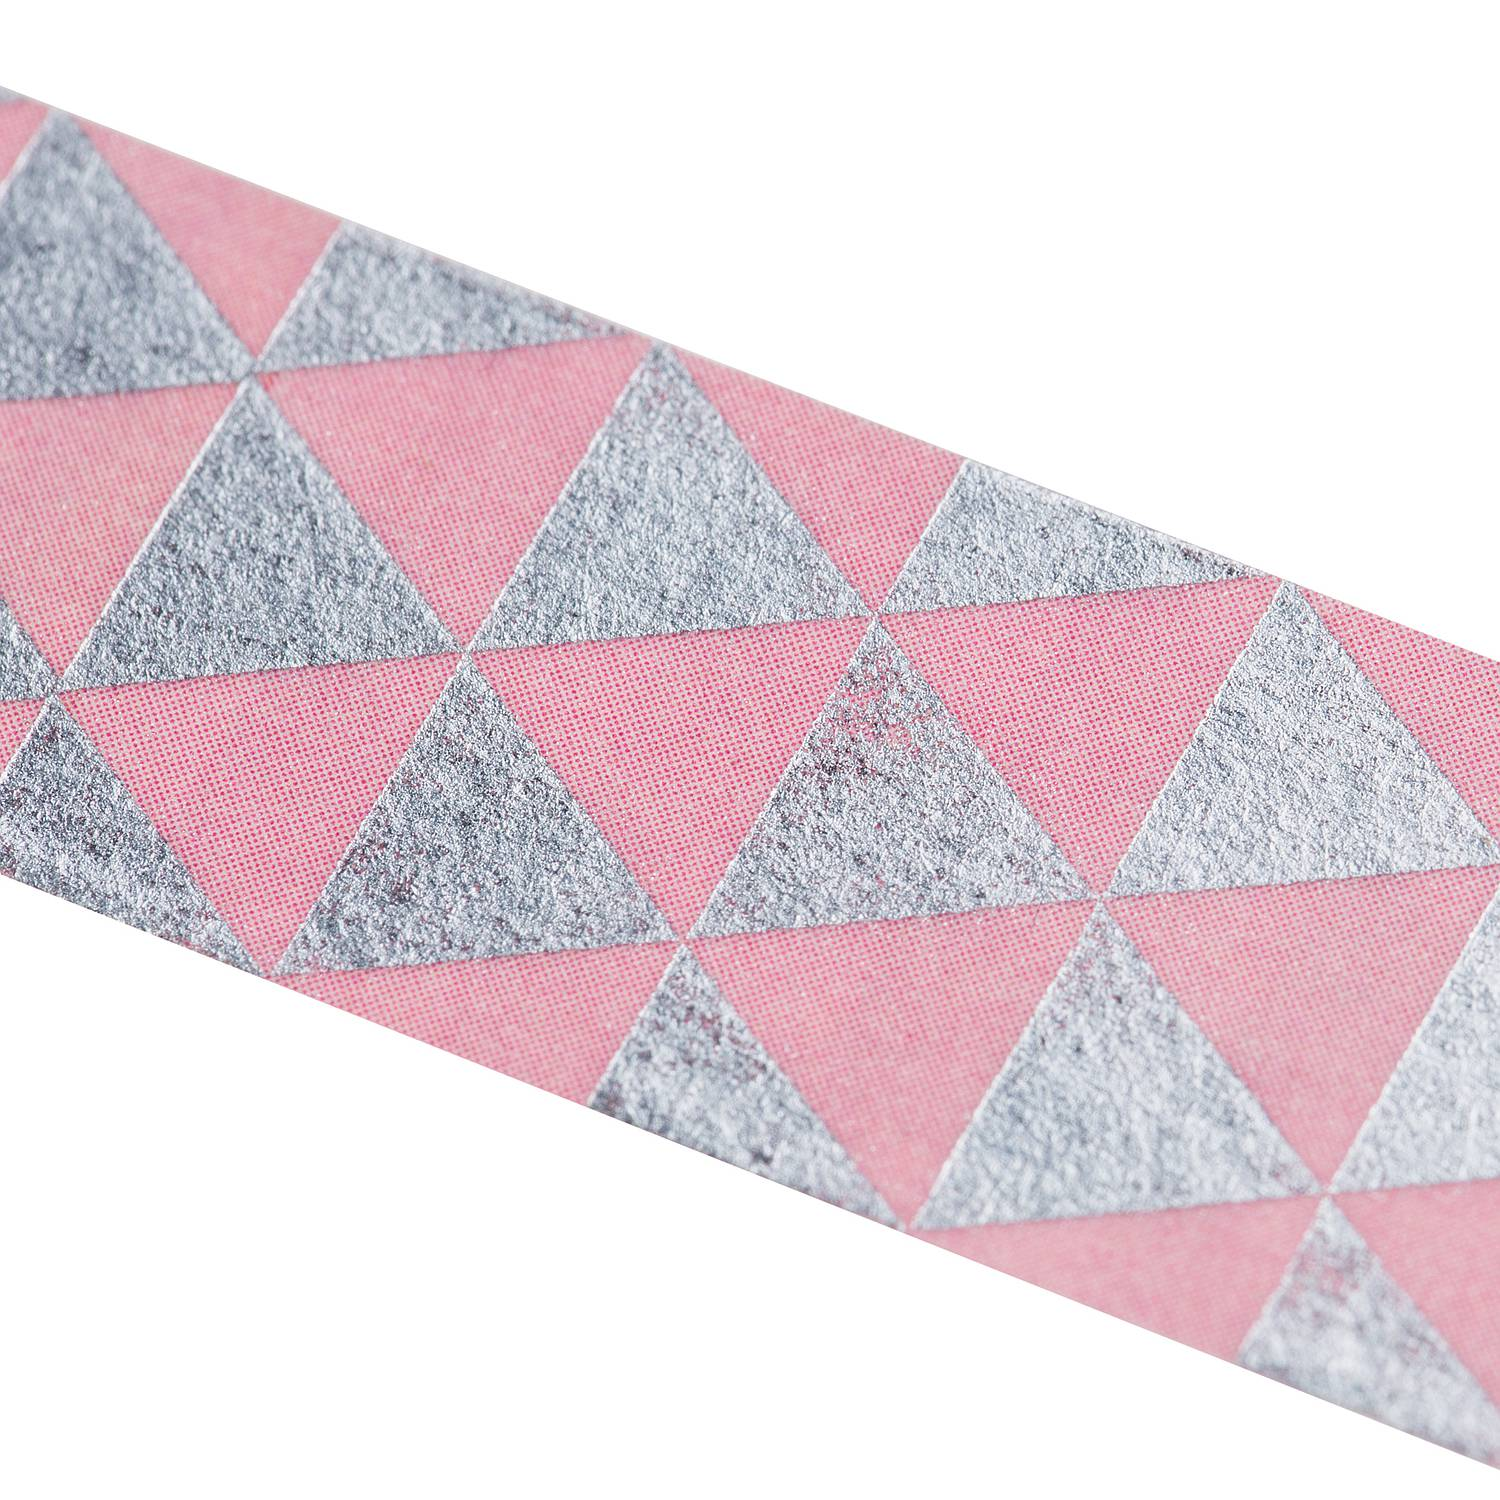 Washi Tape - Silberne Triangel, rosa